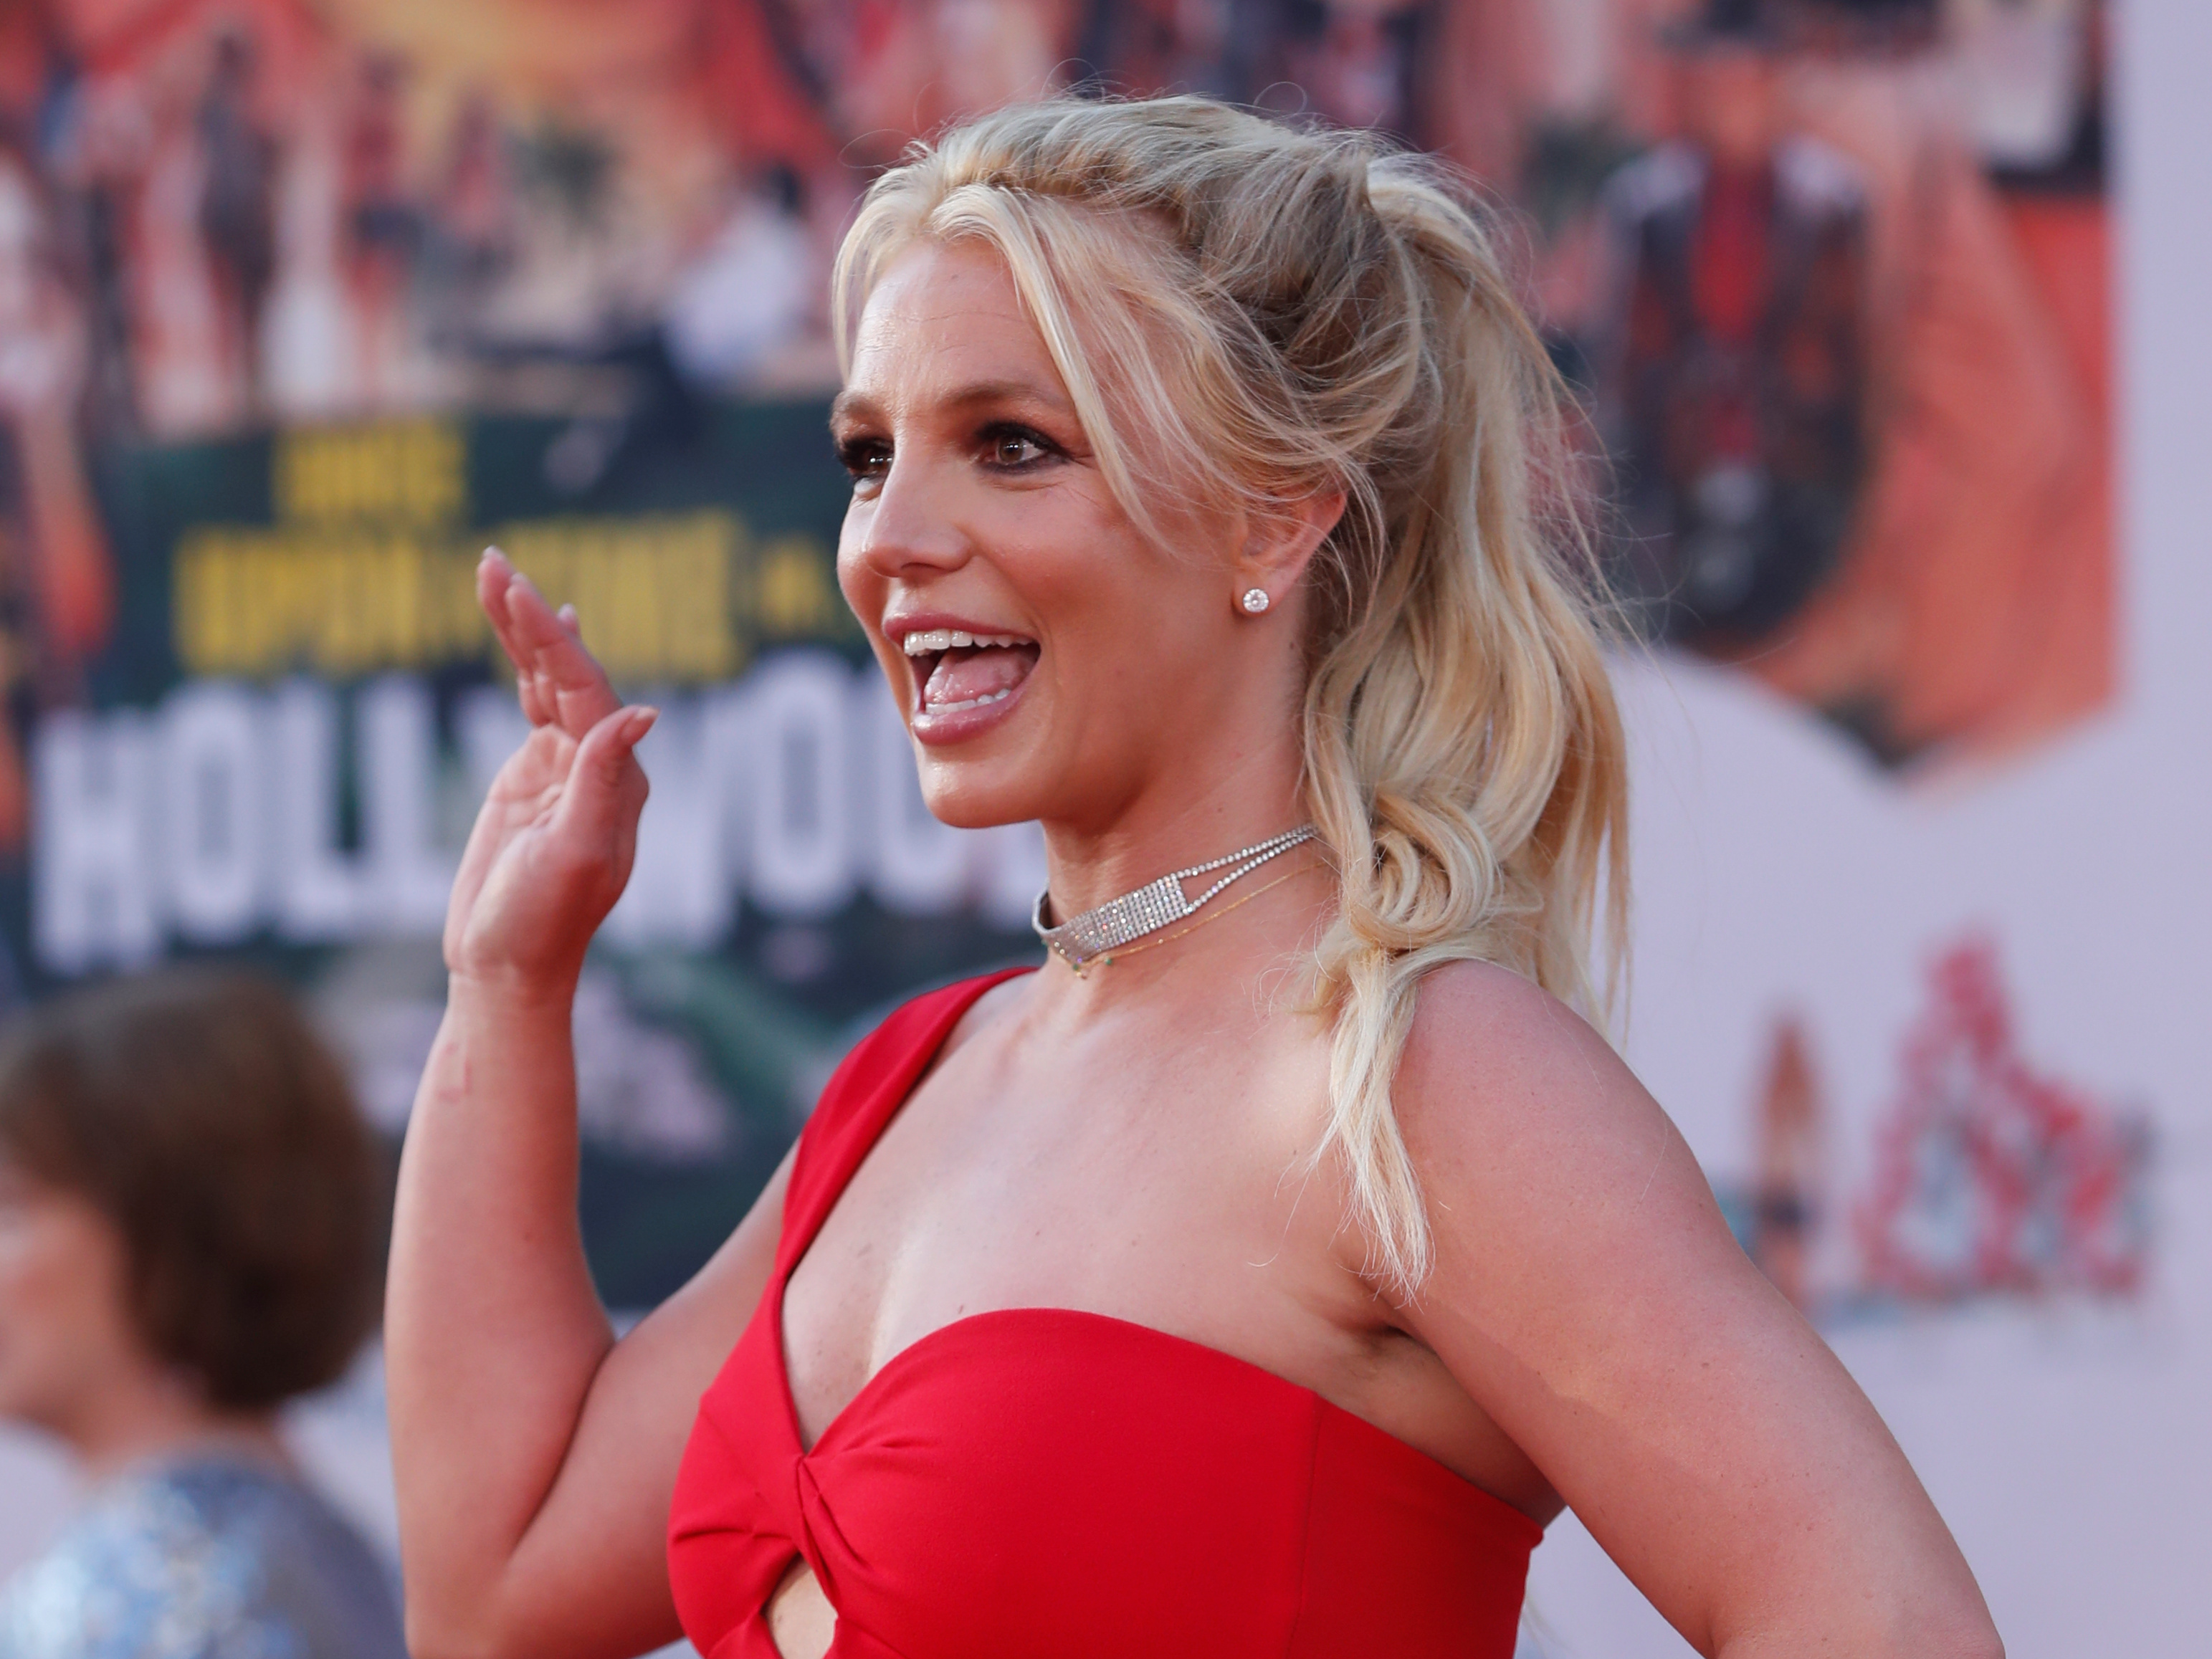 Britney Spears hasn't legally managed her $59 million fortune in 12 years. Here is how the pop icon makes and spends her money, from Target browsing journeys to California mansions.